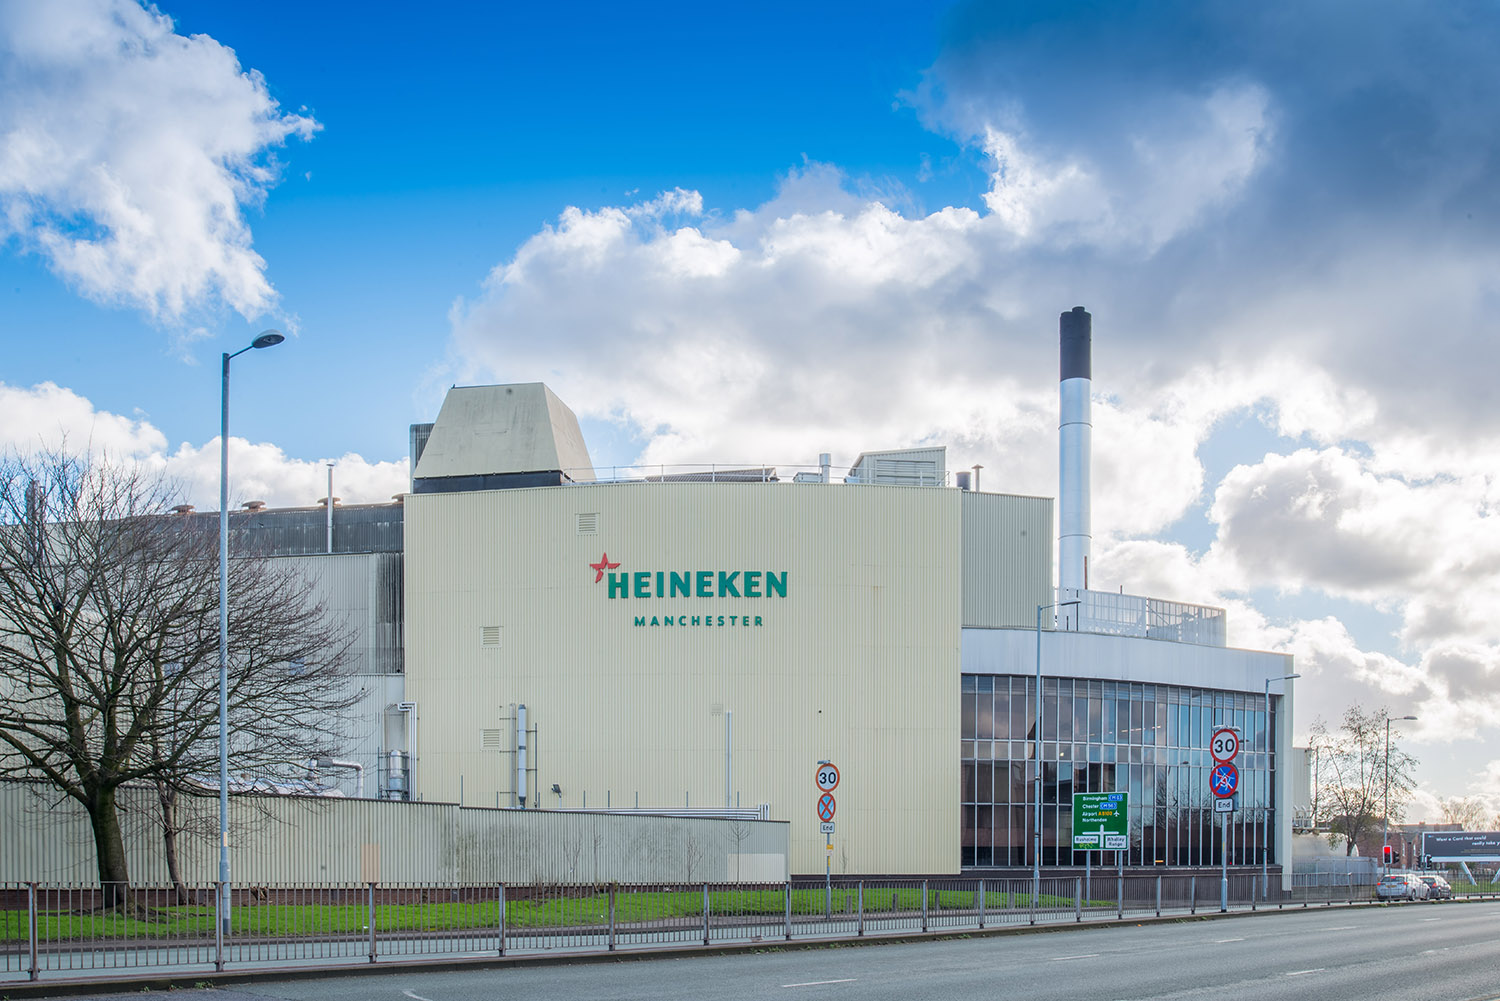 The Heineken Manchester brewery